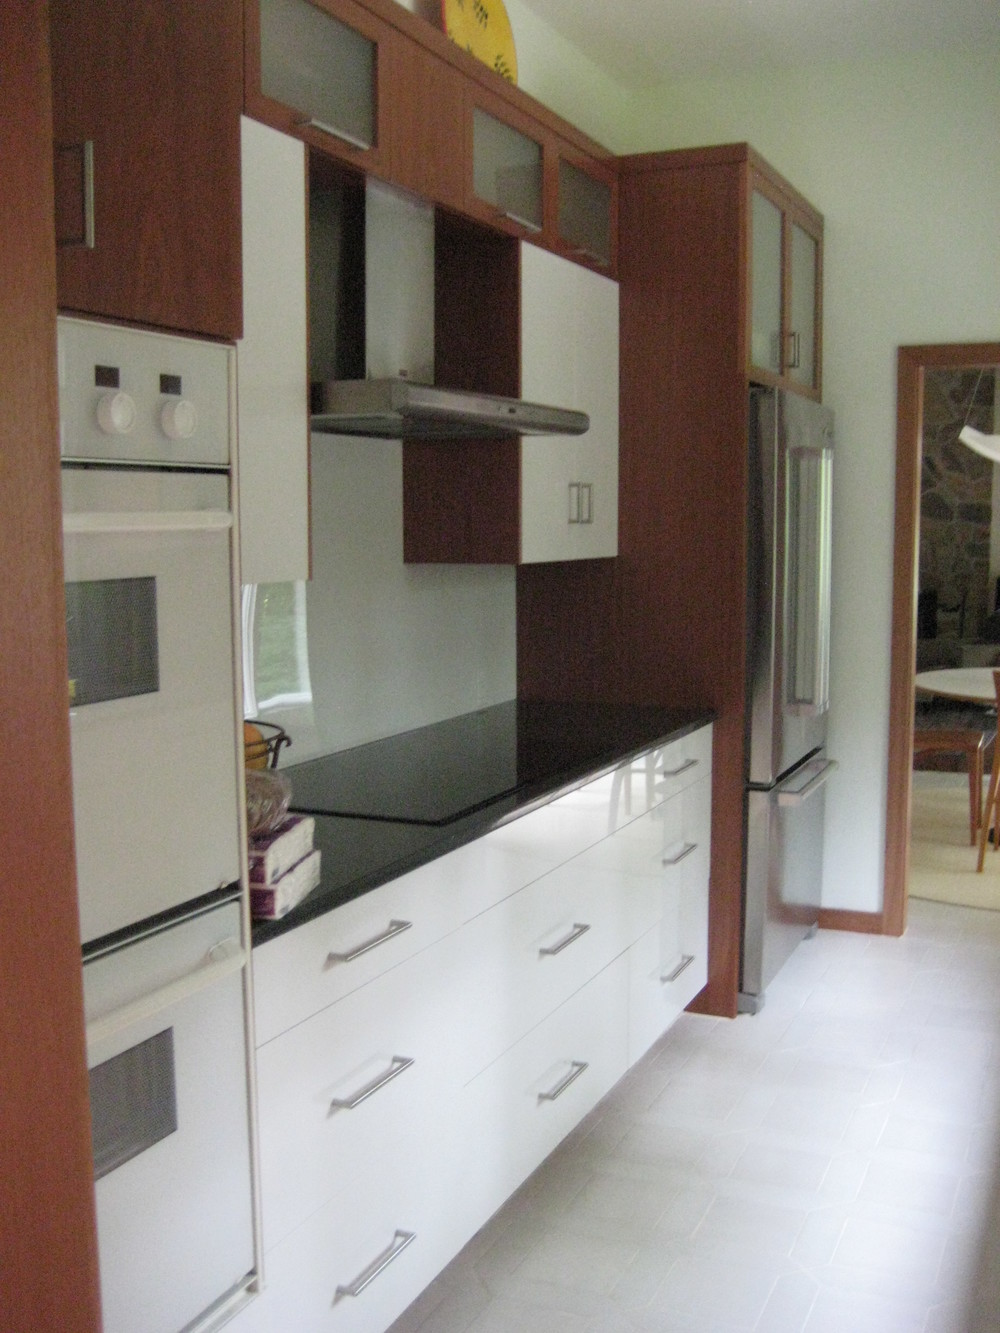 gloor kitchen I.jpg